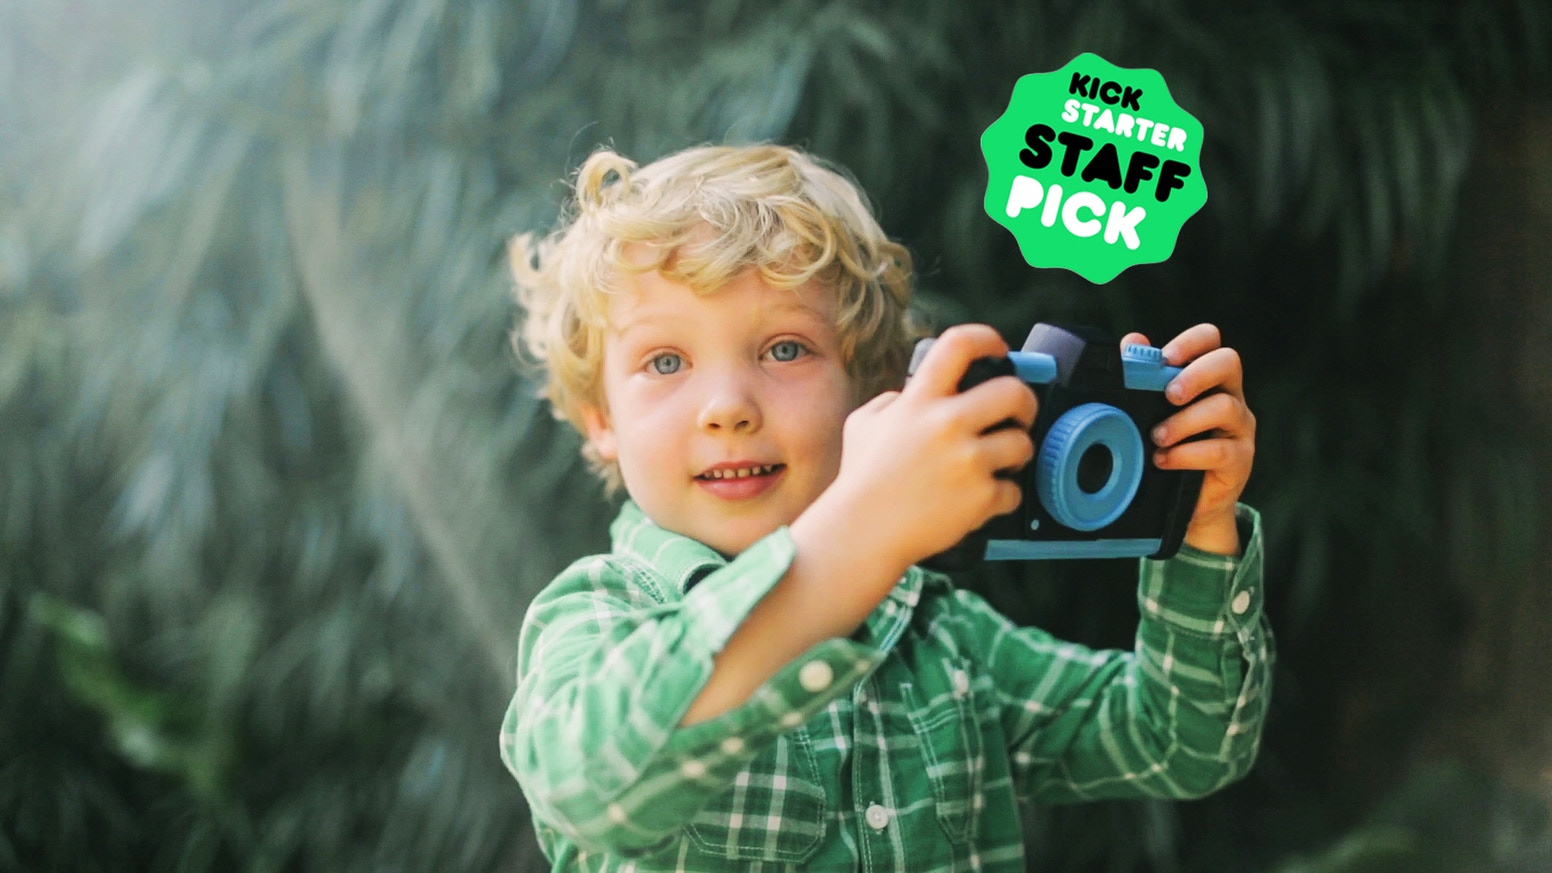 Inspired by the classic 35mm camera design, Pixlplay unleashes the power of smartphones for kids to enjoy!